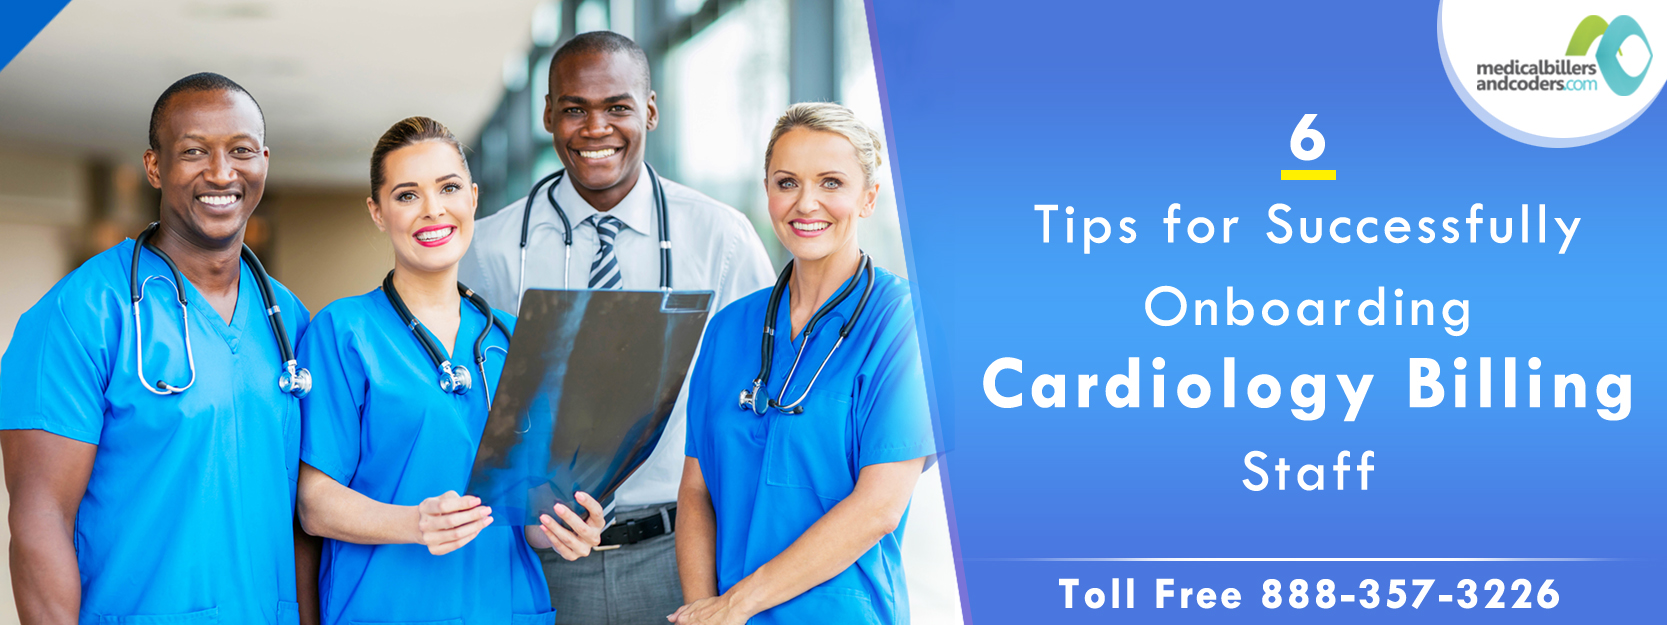 6 Tips for Successfully Onboarding Cardiology Billing Staff